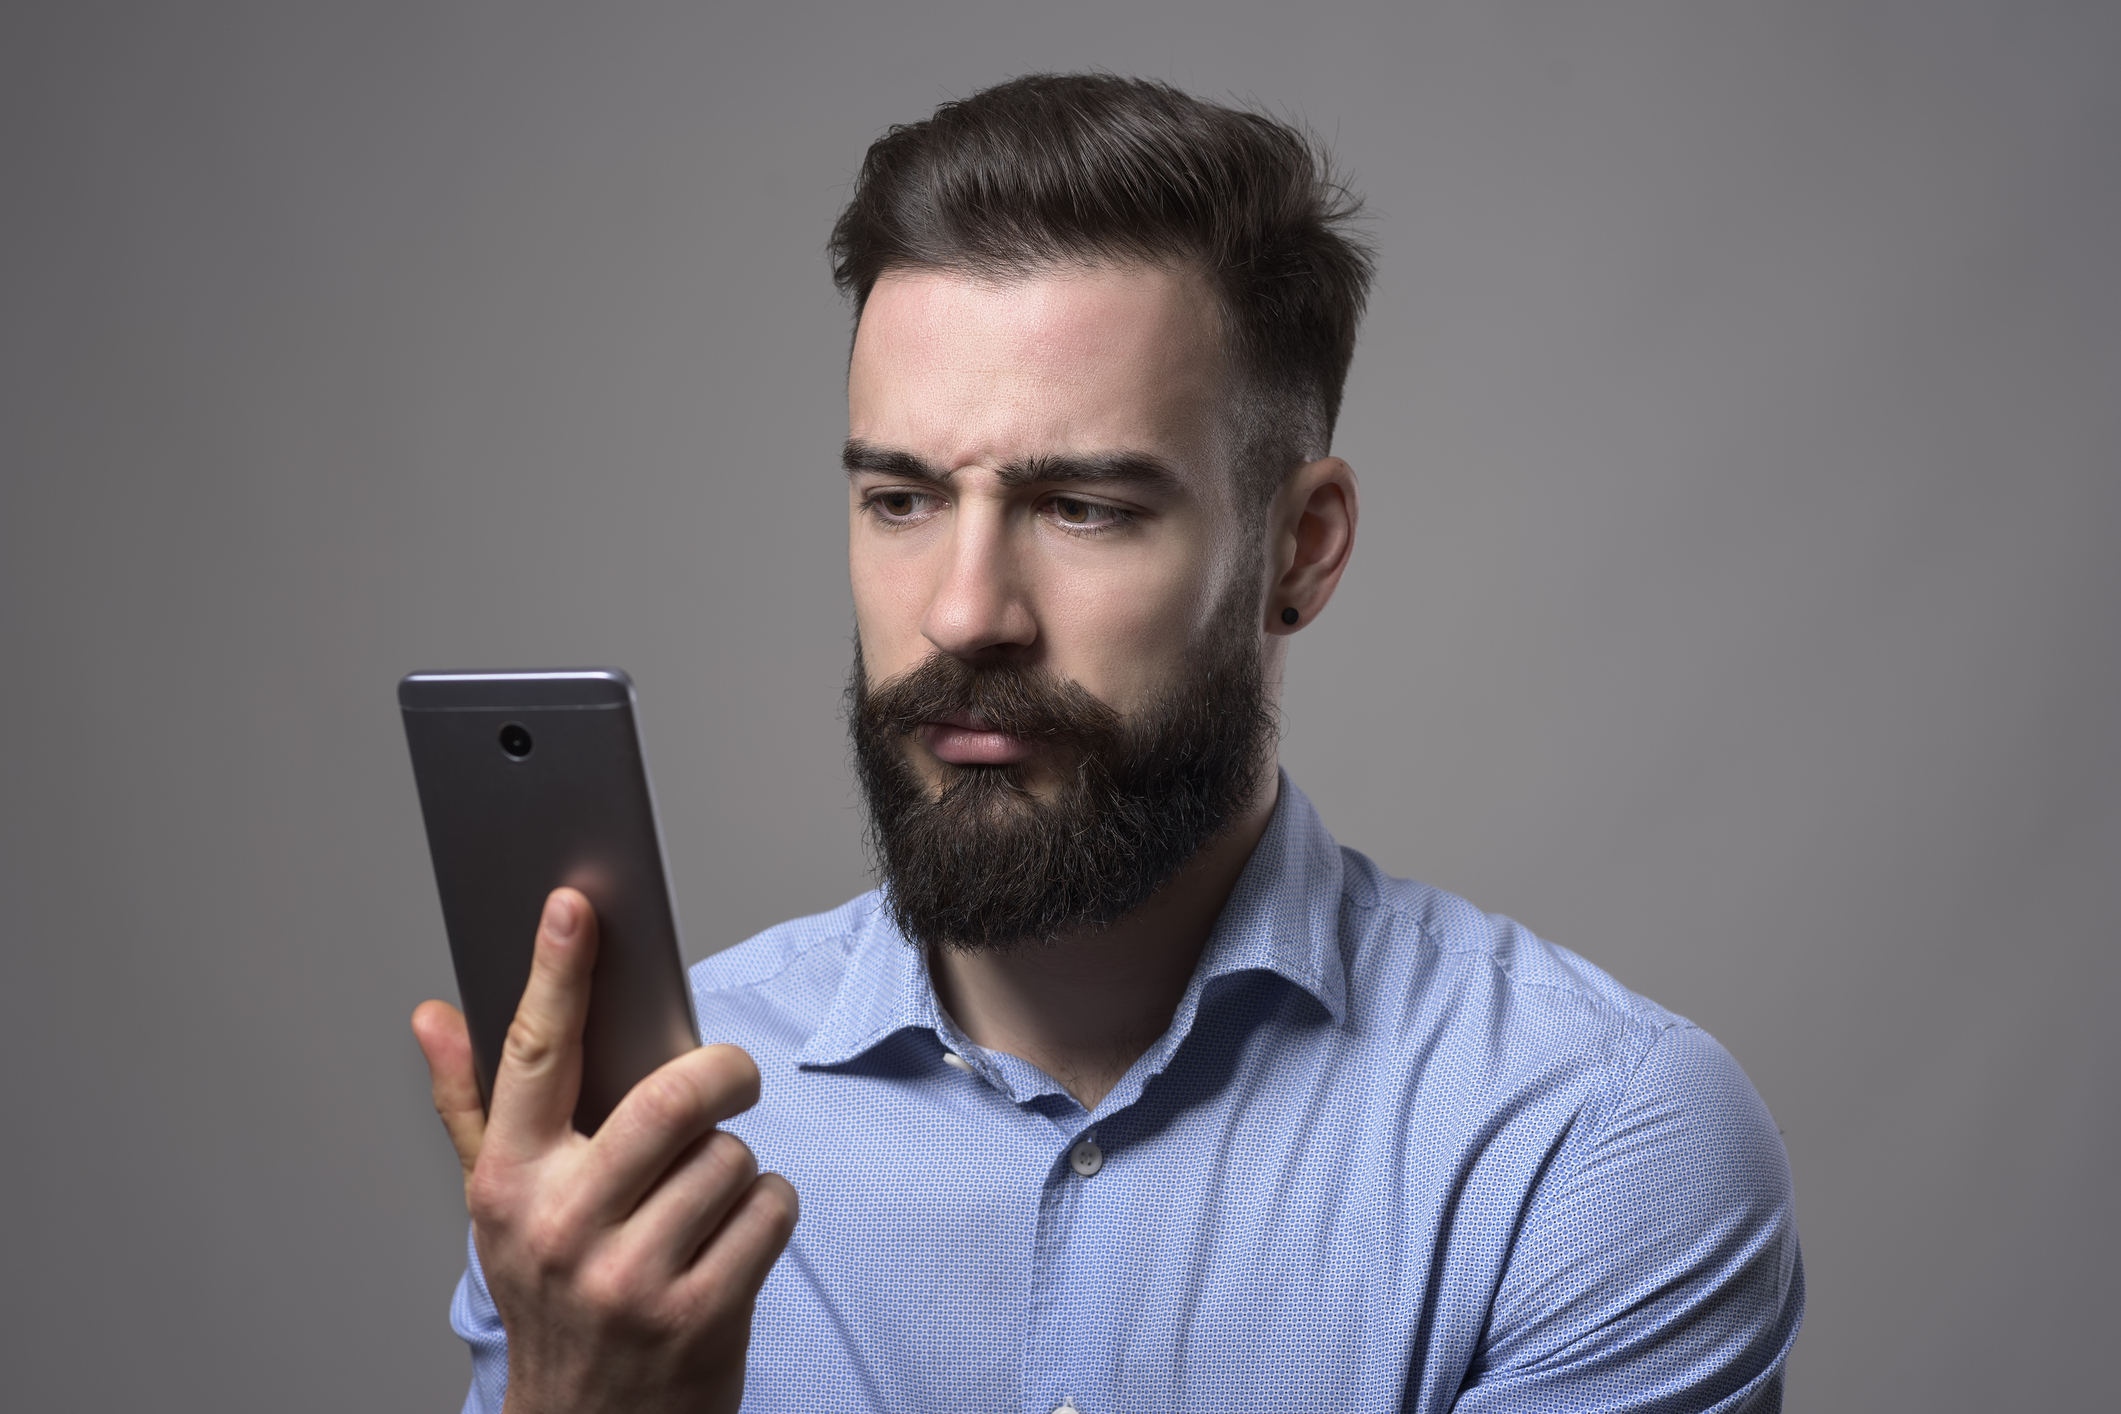 Cleaning up your phone: 5 things to declutter